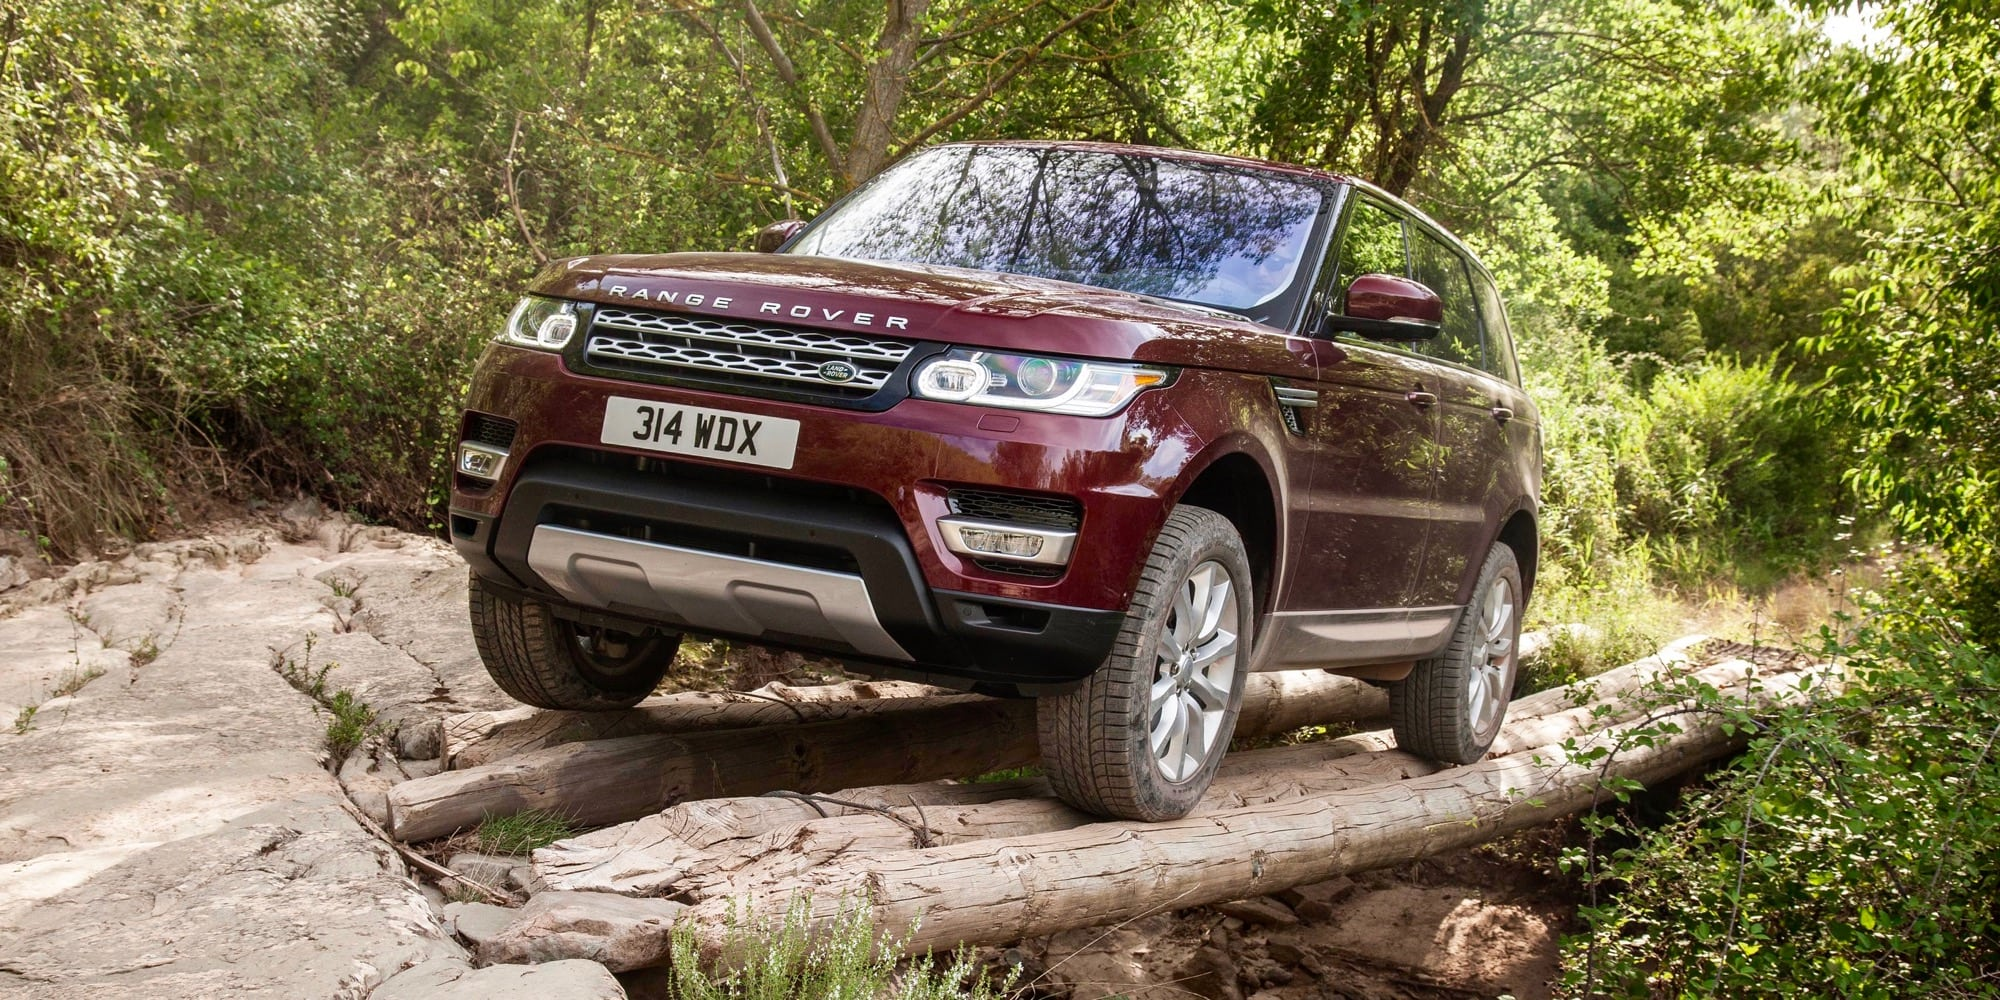 2016 Range Rover Sport : Review